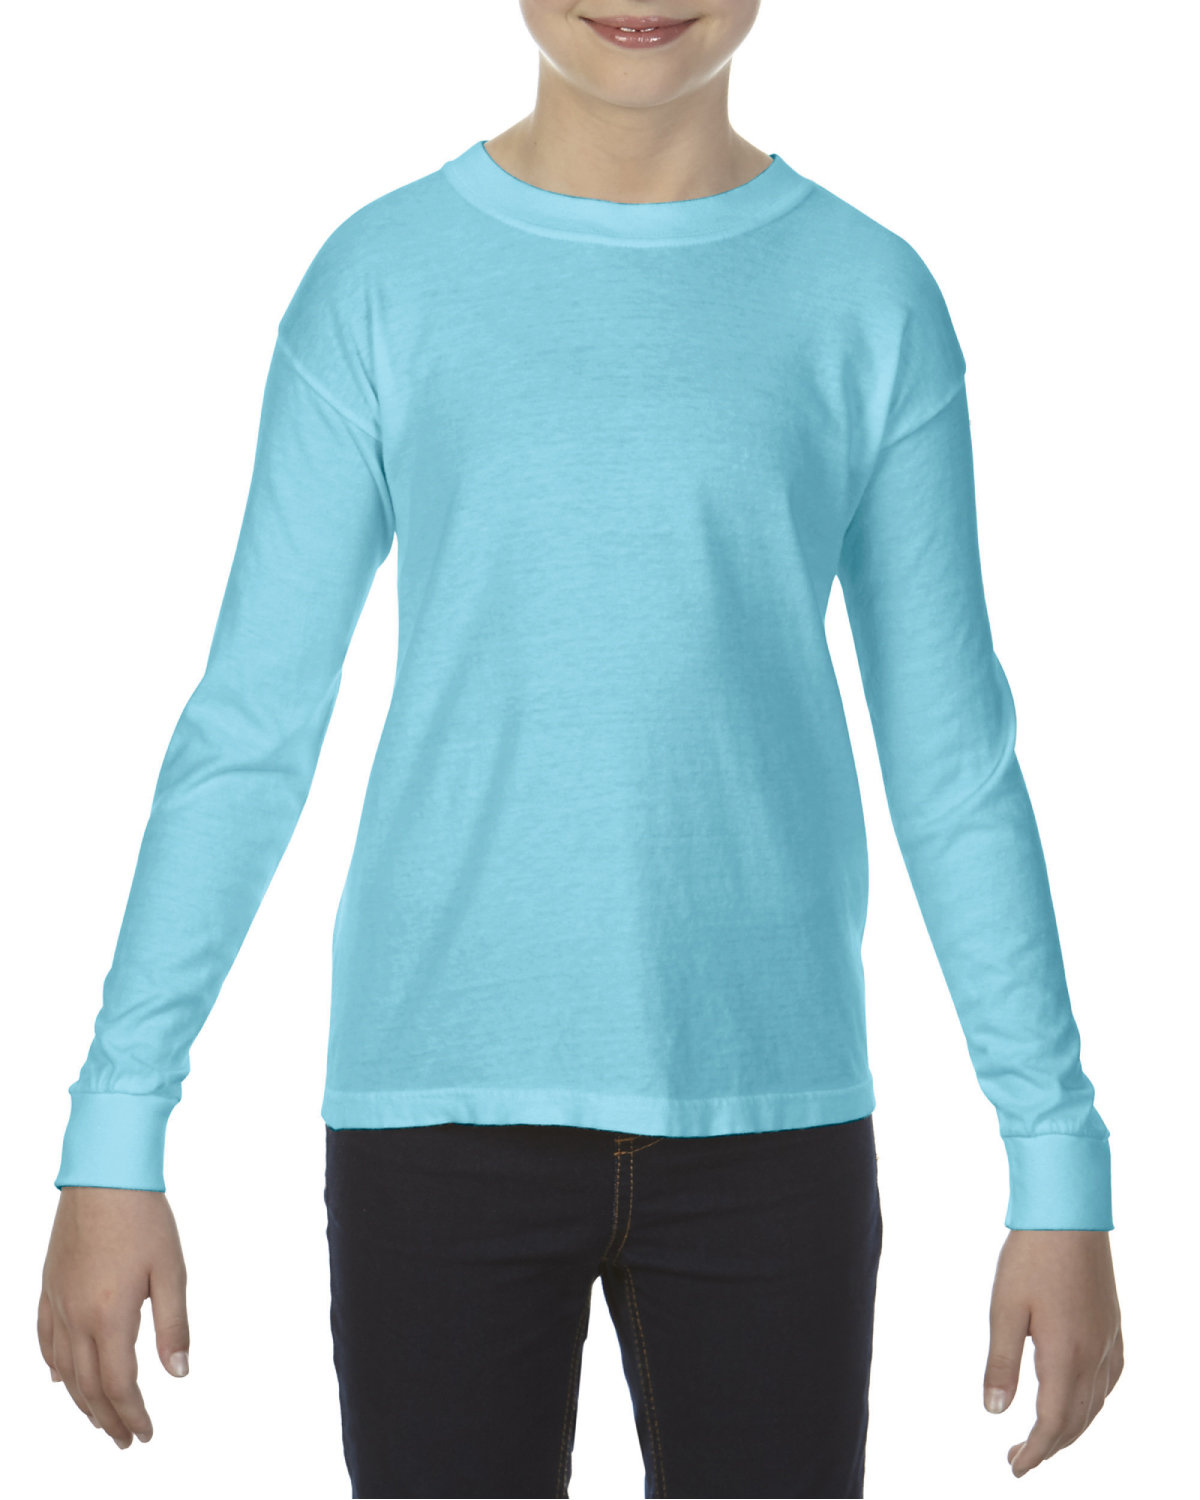 Comfort Colors Youth Garment-Dyed Long-Sleeve T-Shirt LAGOON BLUE